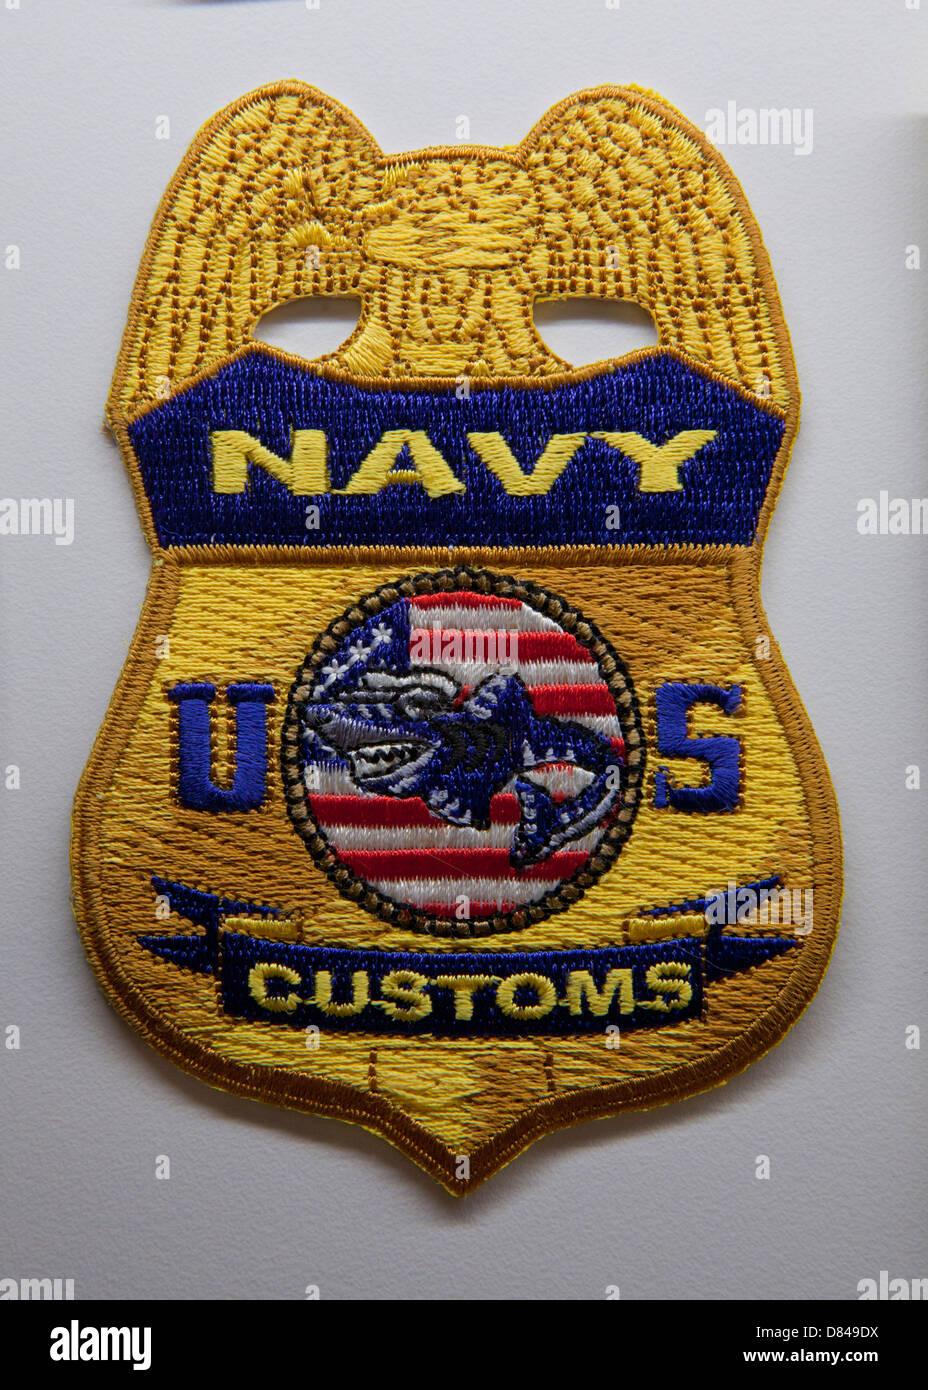 Les douanes US Navy patch Photo Stock